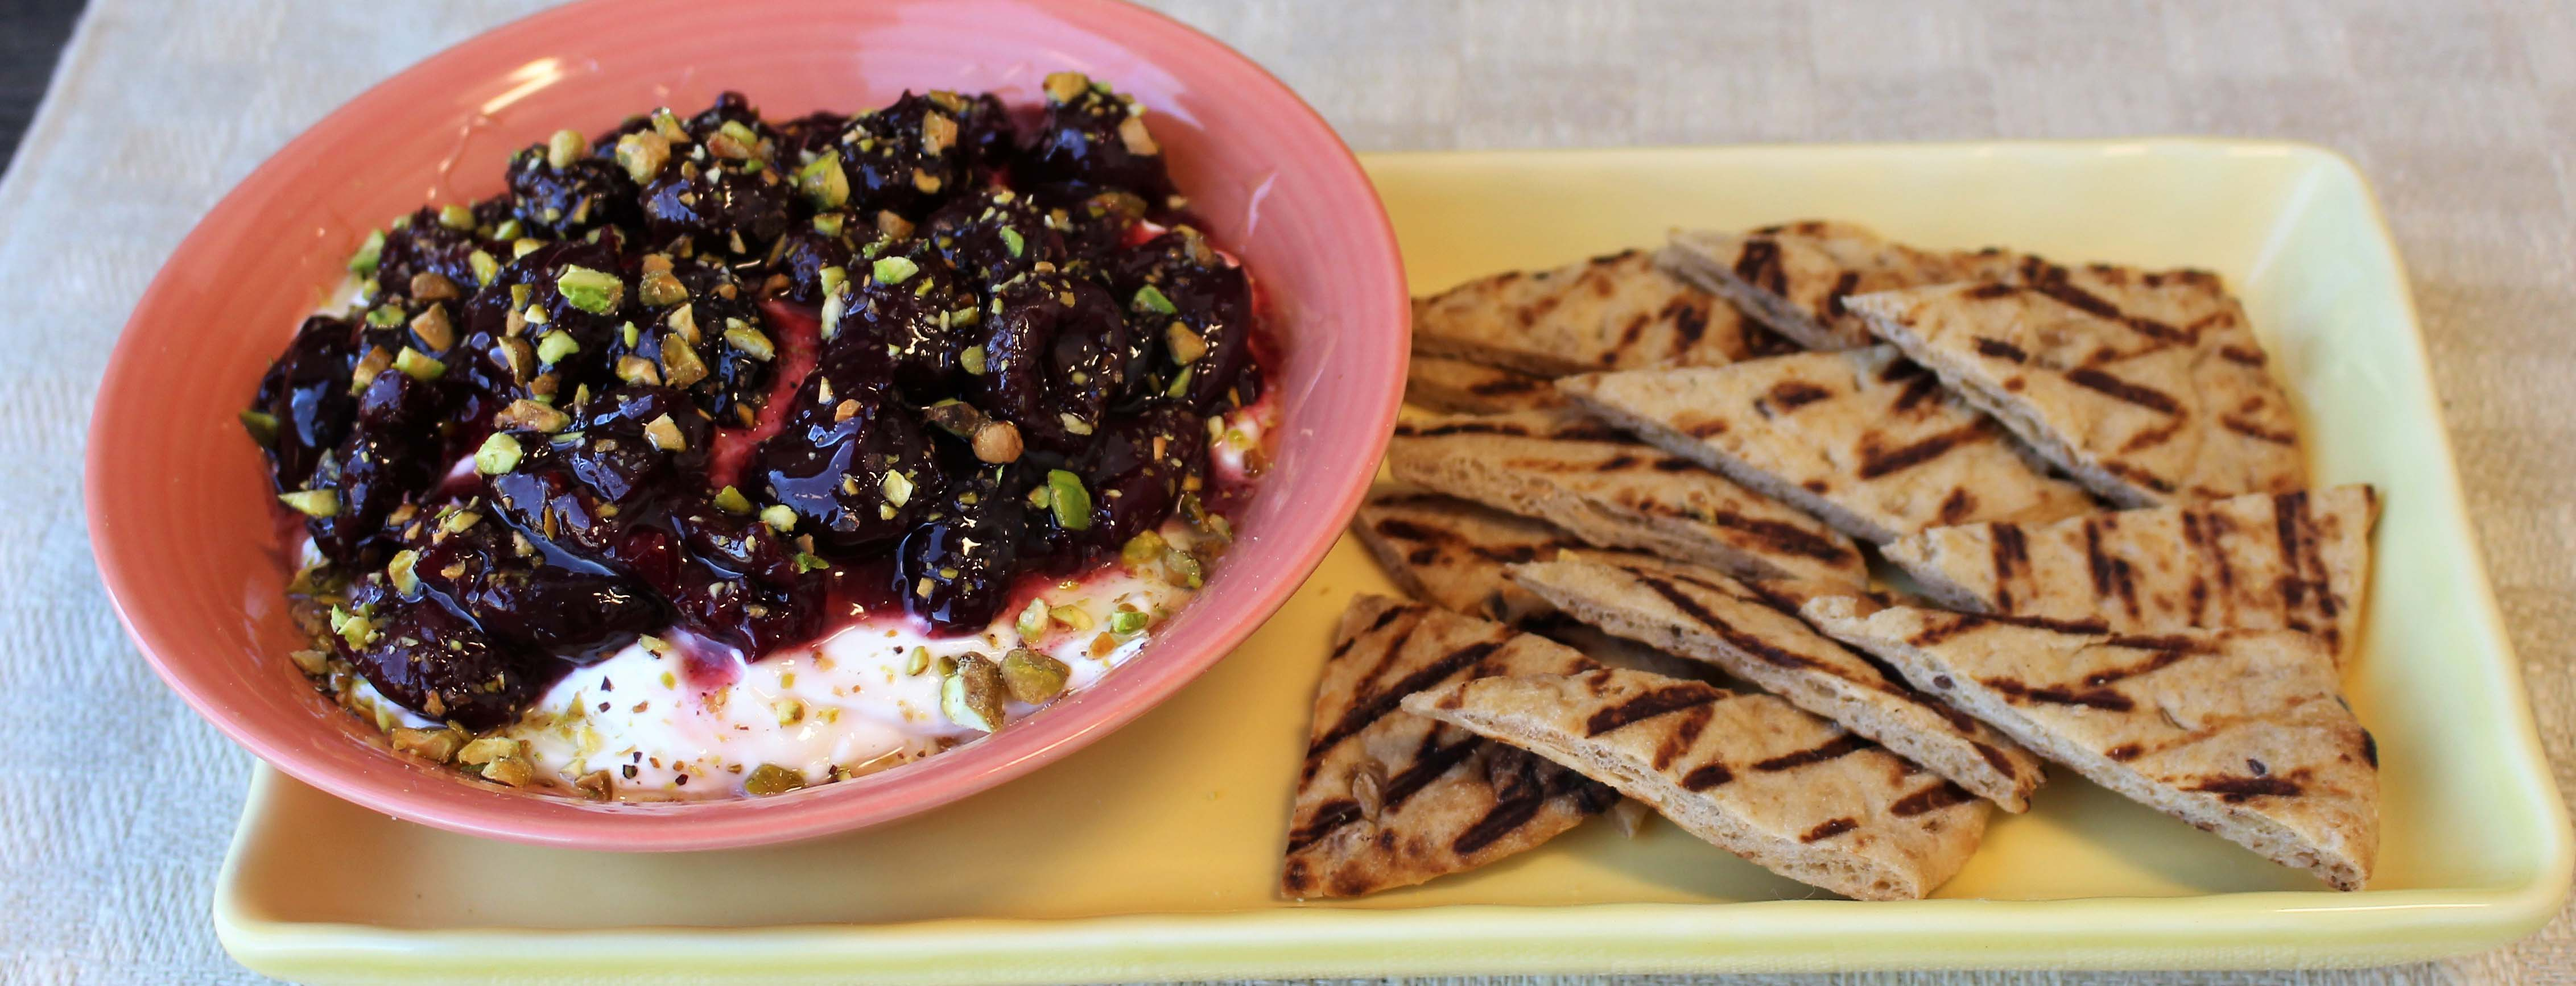 Photo of Labneh with Cherry Compote Toasted Pistachios and Honey with Flatbread Points